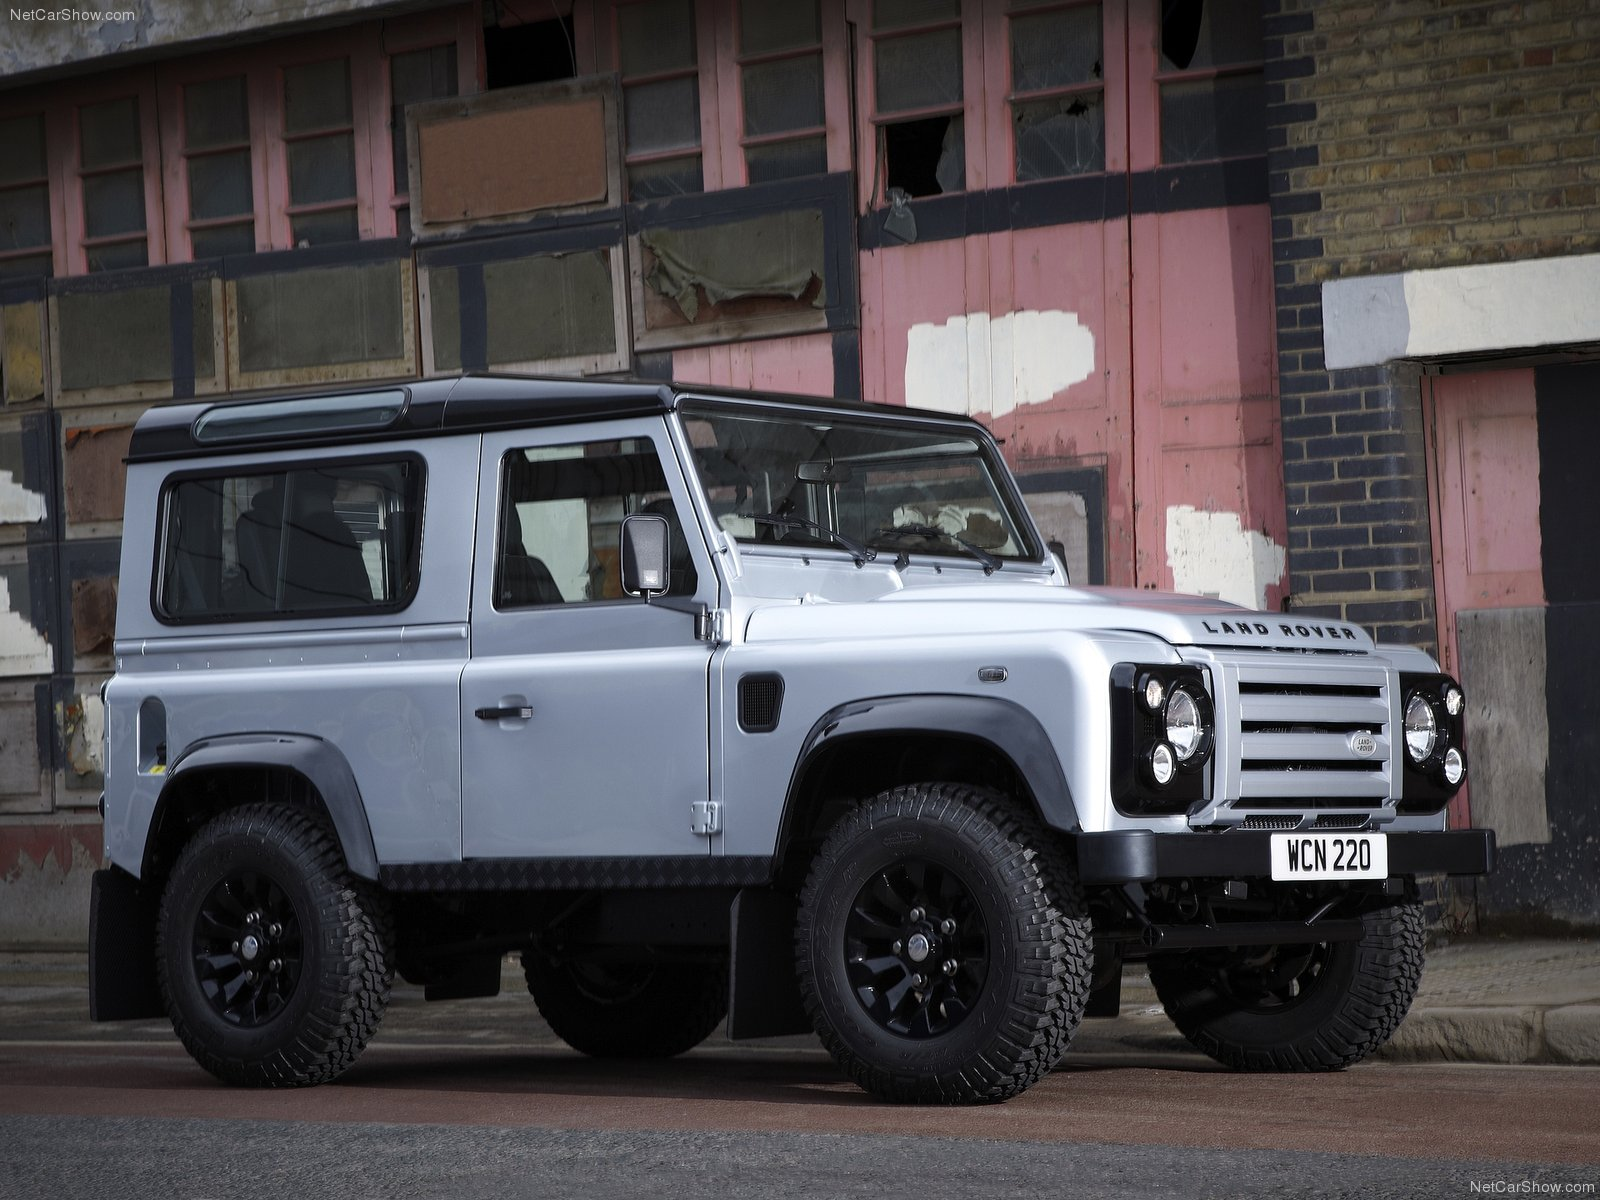 Land Rover Defender X Tech photos Gallery with 15 pics